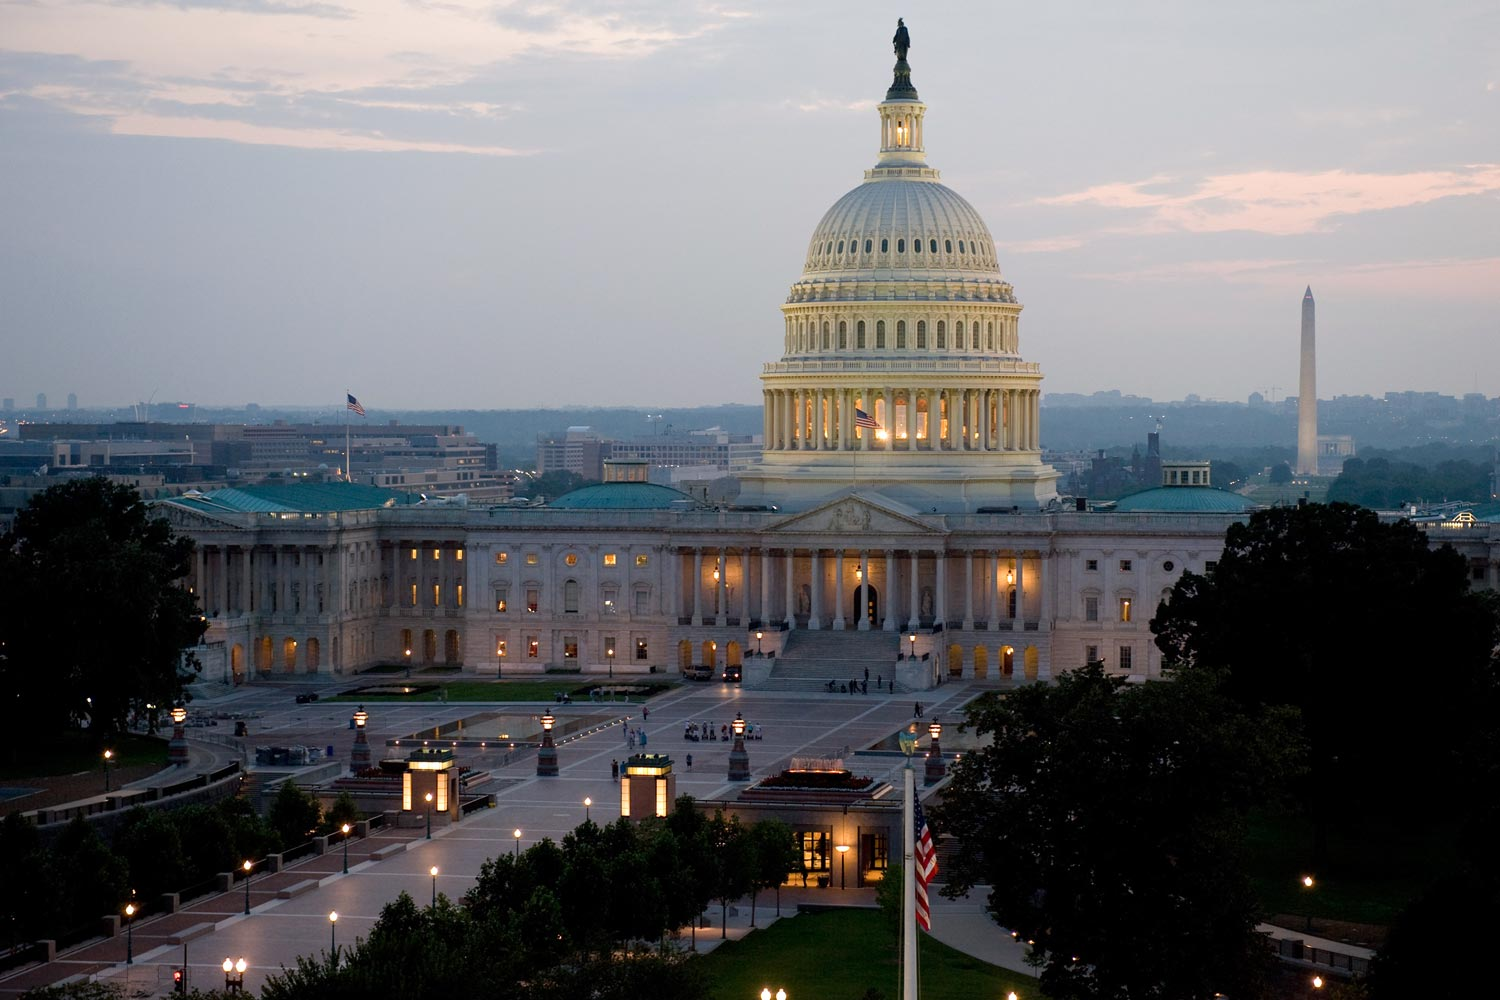 Jefferson took on an active role in the planning and design of the U.S. Capitol and the nation's new capital city.